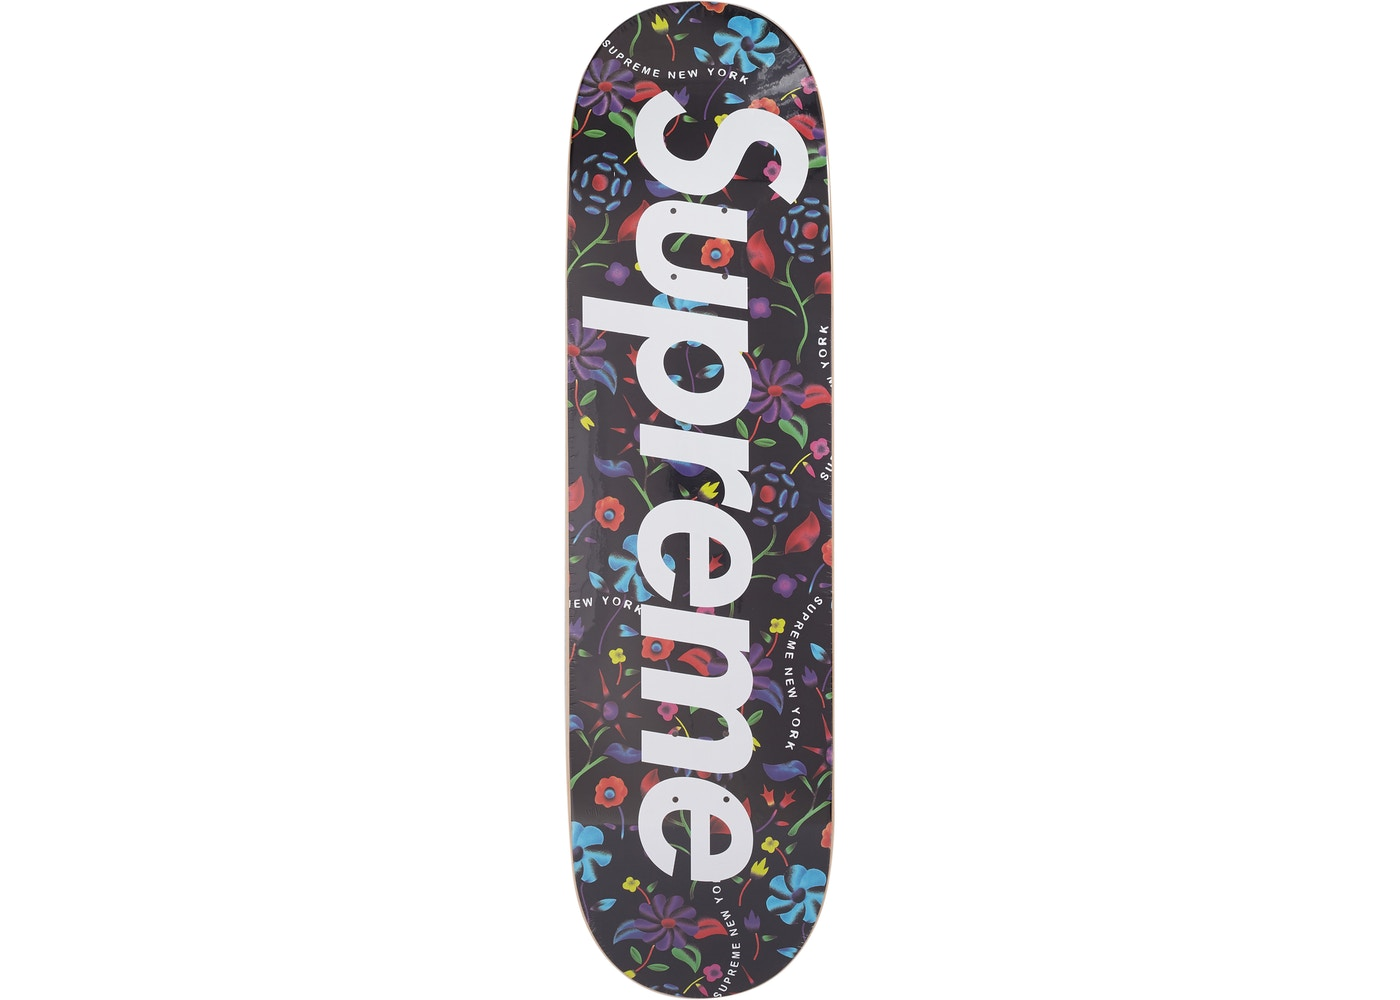 586d7103 Supreme Airbrushed Floral Skateboard Deck Black - SS19